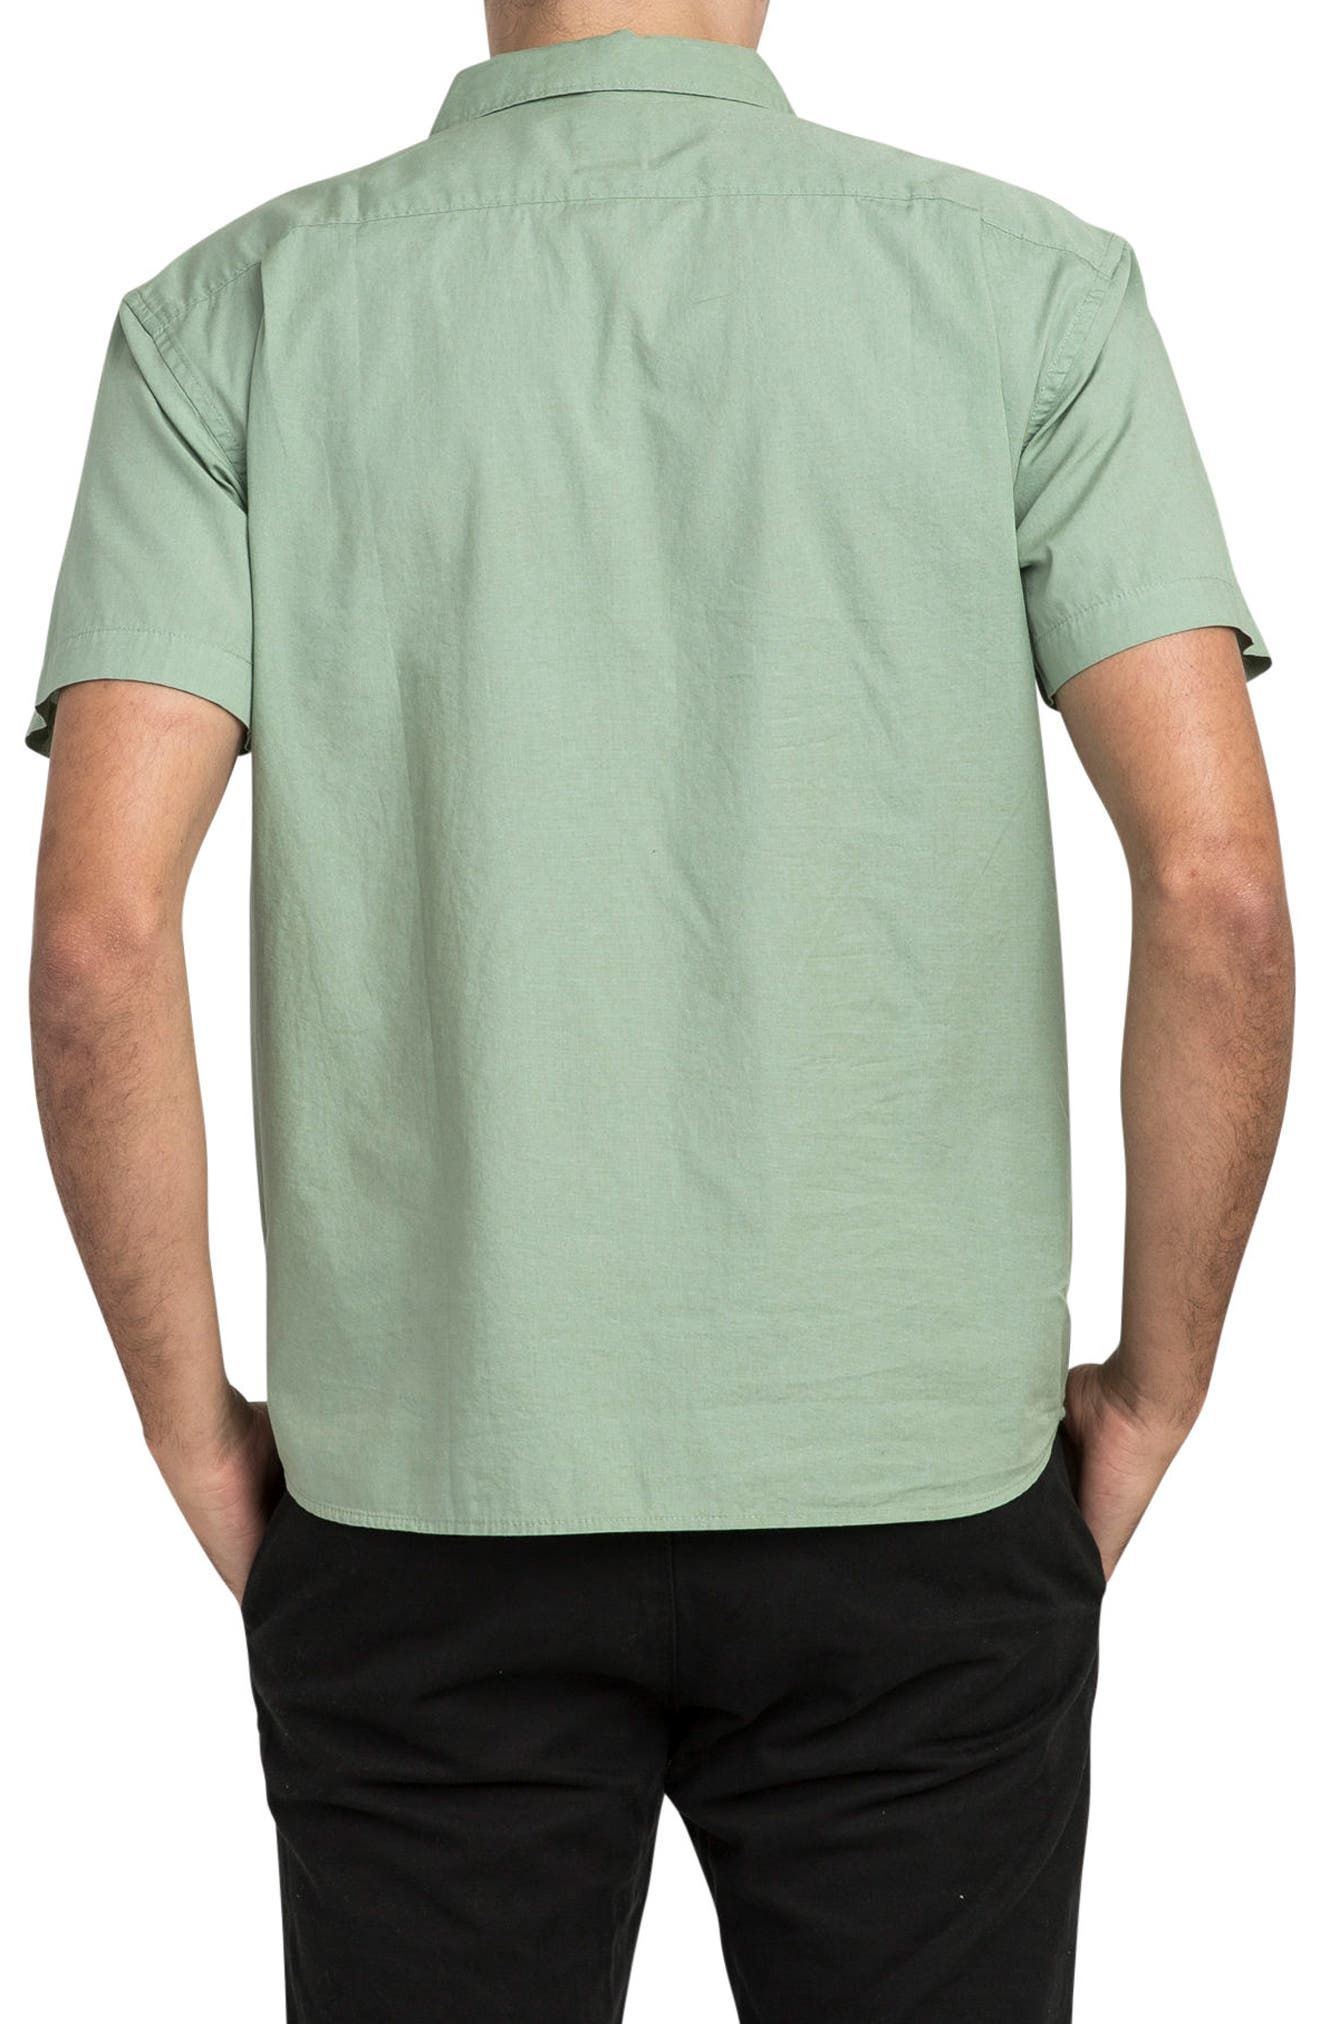 Stress Short Sleeve Shirt,                             Alternate thumbnail 3, color,